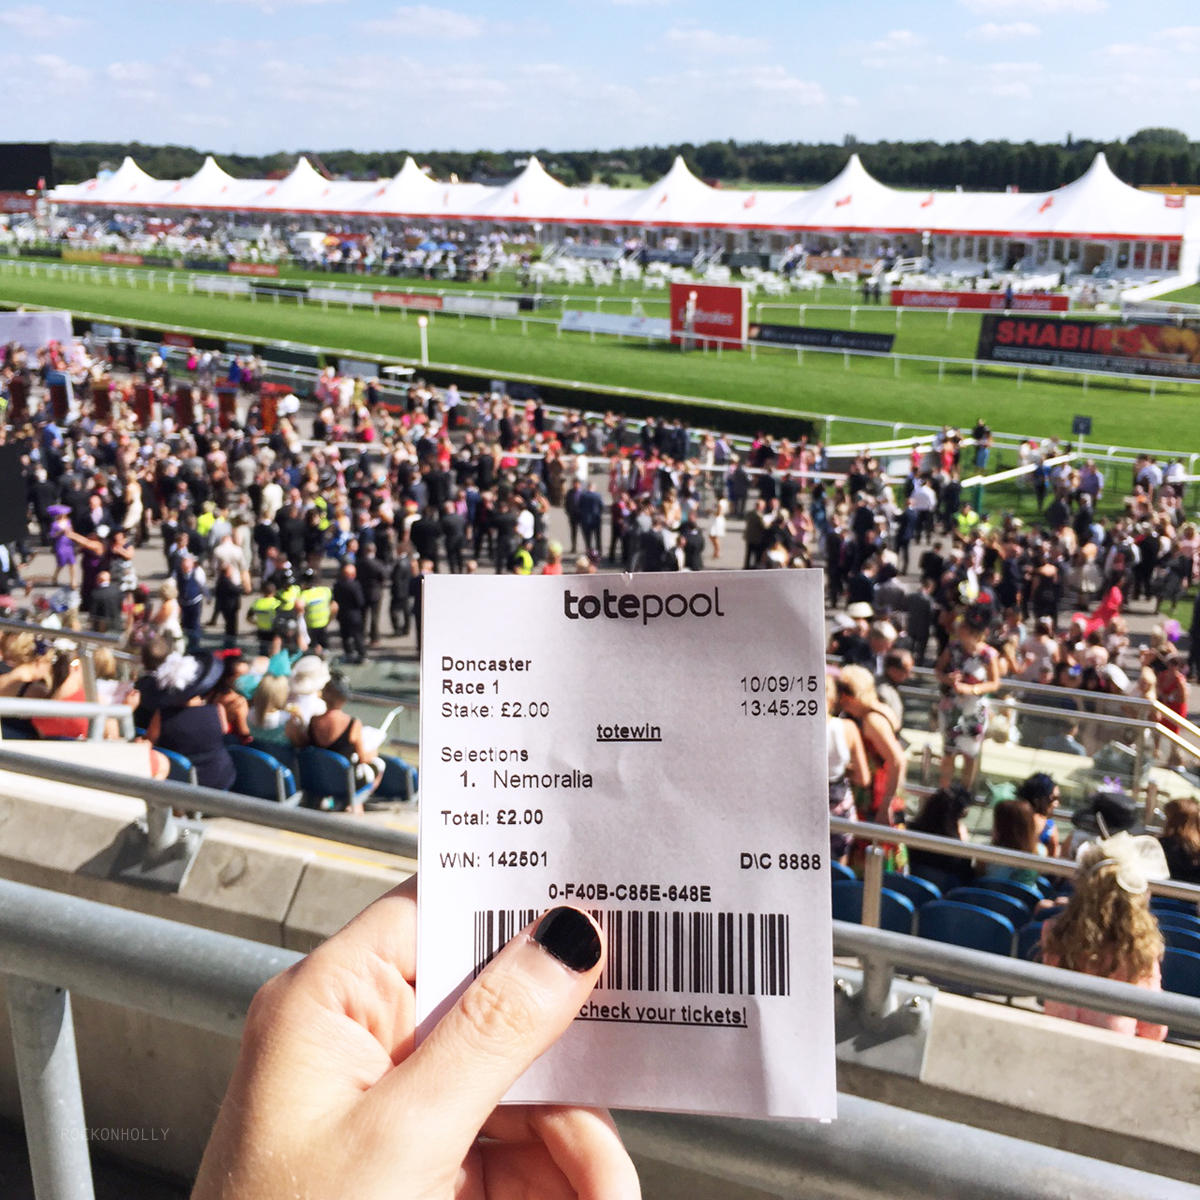 Placing a bet at Ladbrokes Ladies Day at the Races - Doncaster